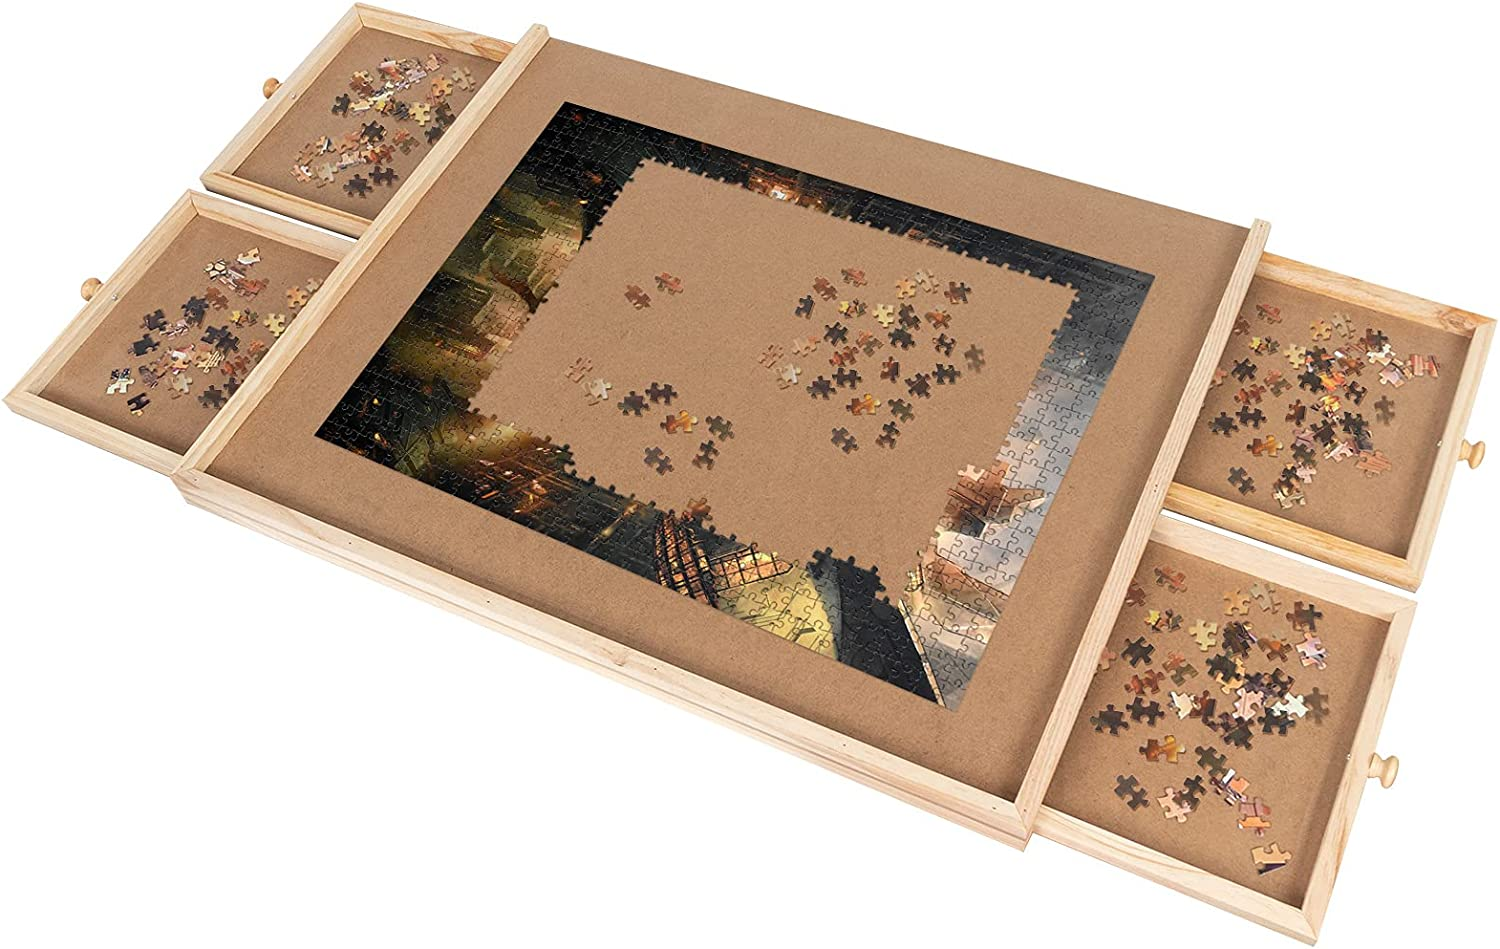 Jigsaw Puzzle Table Outlet sale feature 1000 Pieces Portabl Drawers Adults with Lowest price challenge for